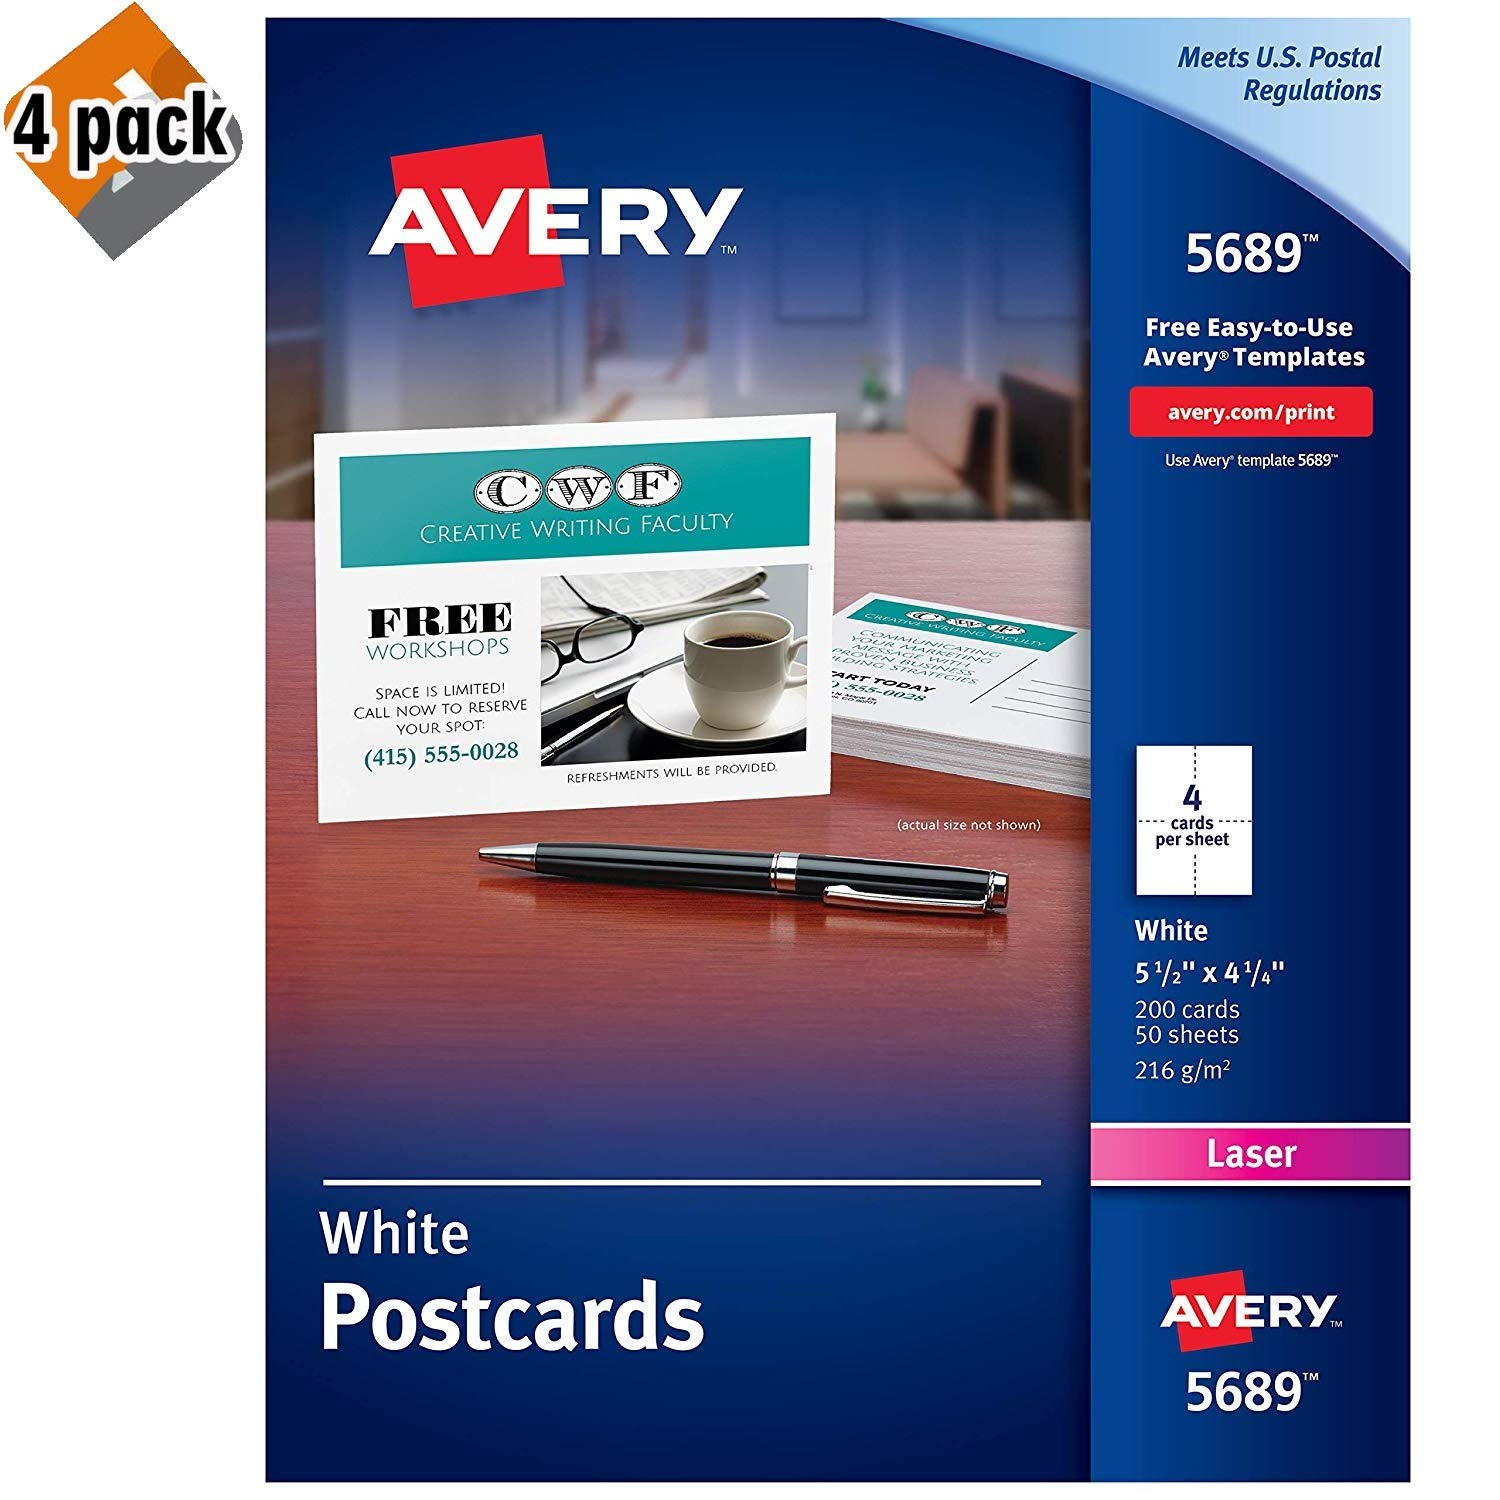 Avery Printable Cards, Laser Printers, 200 Cards, 4.25 x 5.5, U.S. Post Card Size (5689) - 4 Pack by AVERY